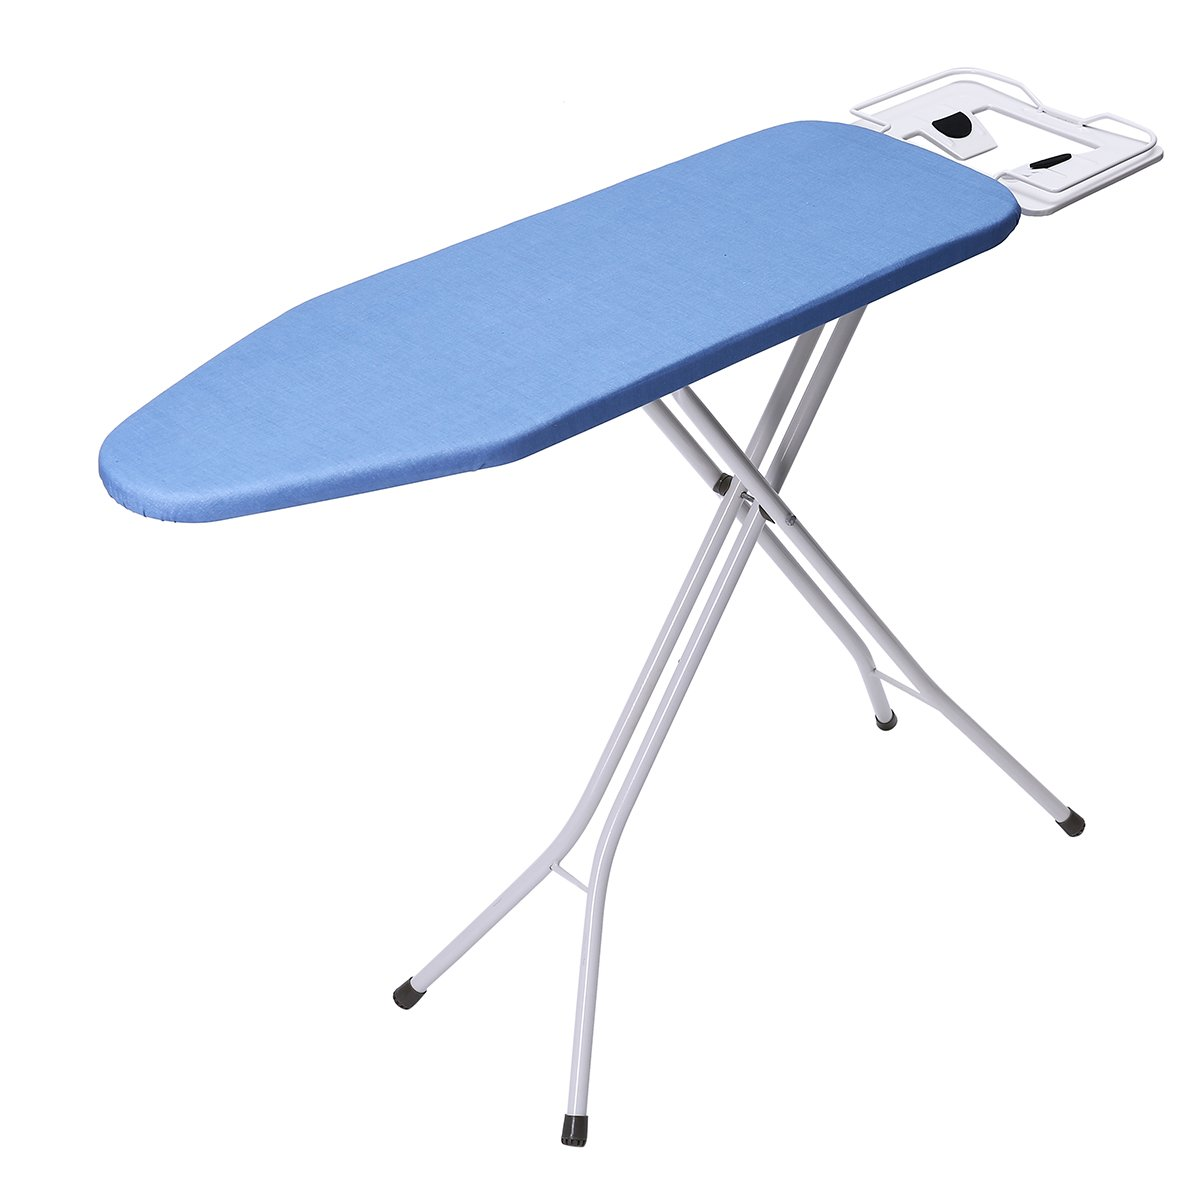 king do way Ironing Board 39'' L x 12''W x 33''H Opensize 4-Leg Table for Ironing Clothes Tabletop Ironing Board with Iron Rest Wide Top Iron Board Design by king do way